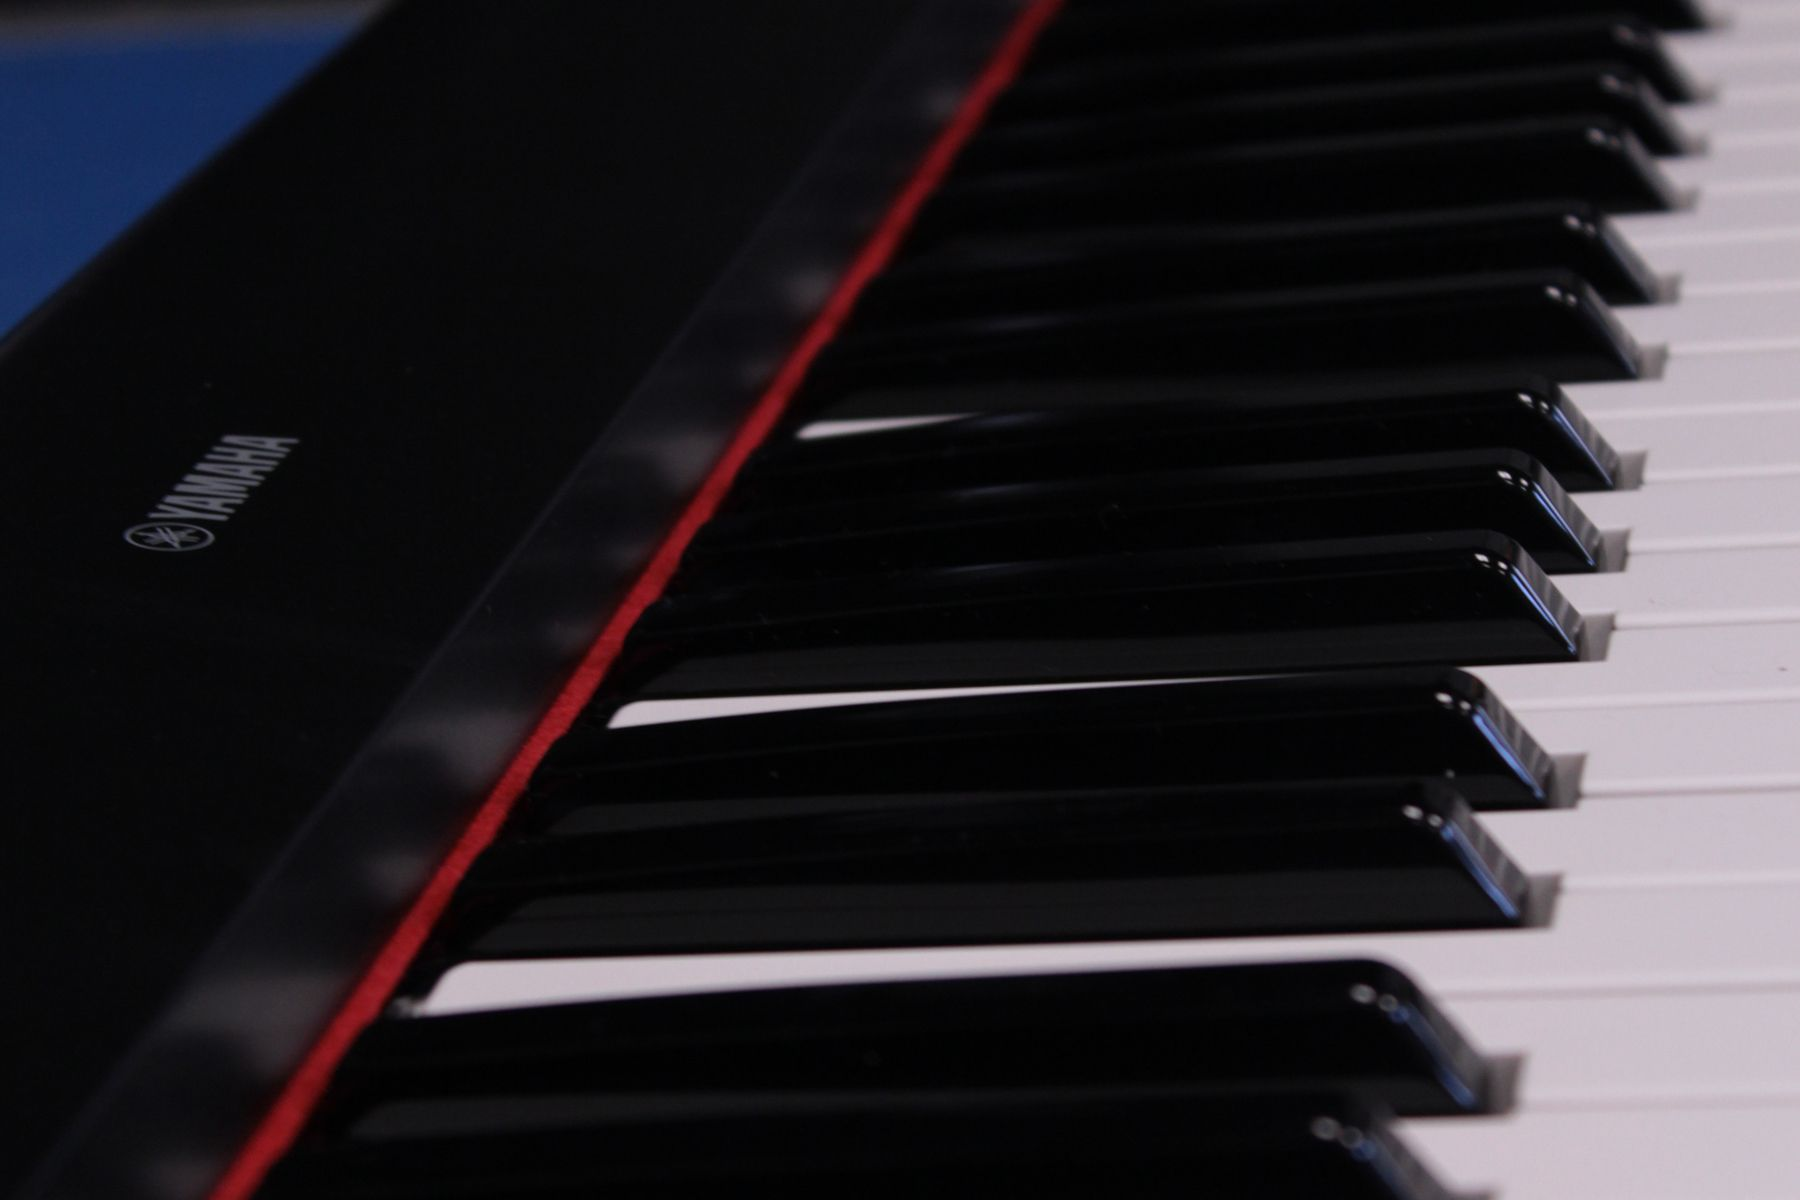 Close up of Yamaha keyboard